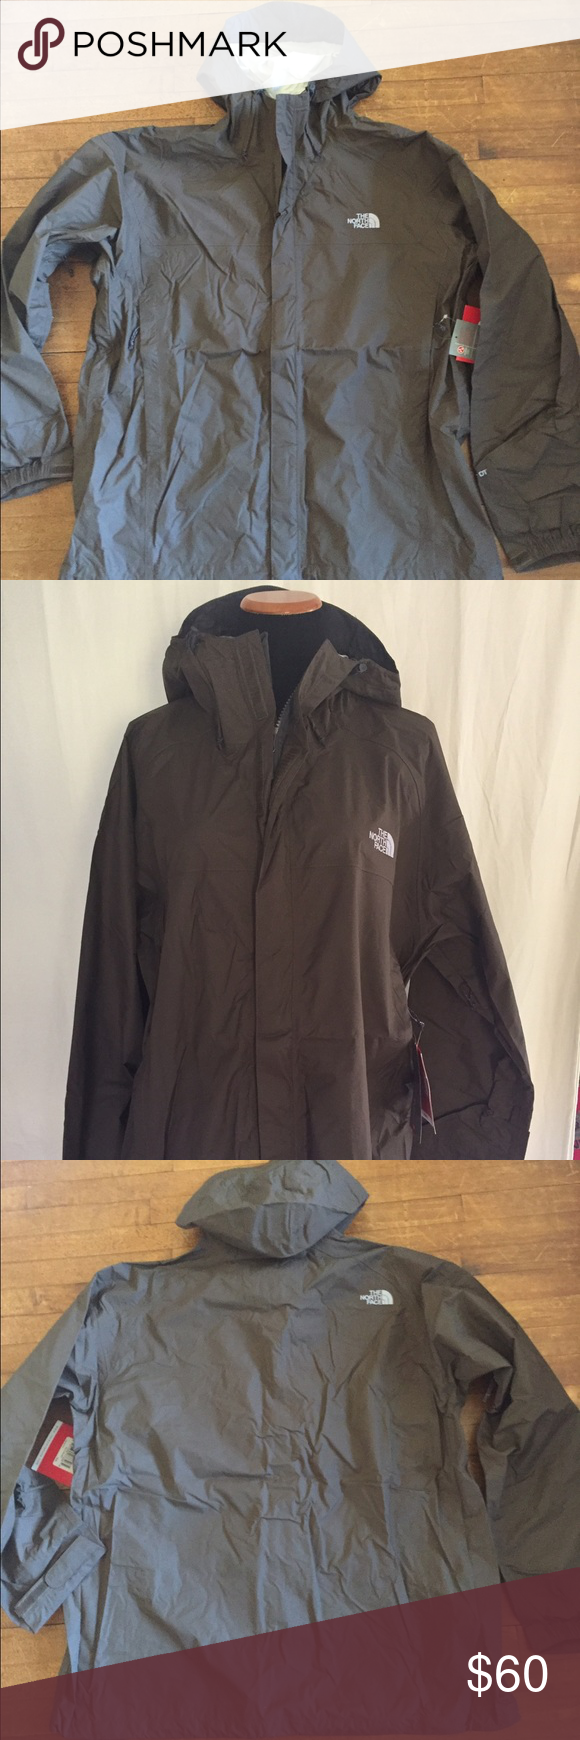 "North Face Venture Waterproof Jacket New with tags! 100% nylon. Waterproof, breathable, and lightweight. Zip pockets, zip front, and Velcro front closure. Length: 30""/Chest: 26""/Arms: 26"". The North Face Jackets & Coats"